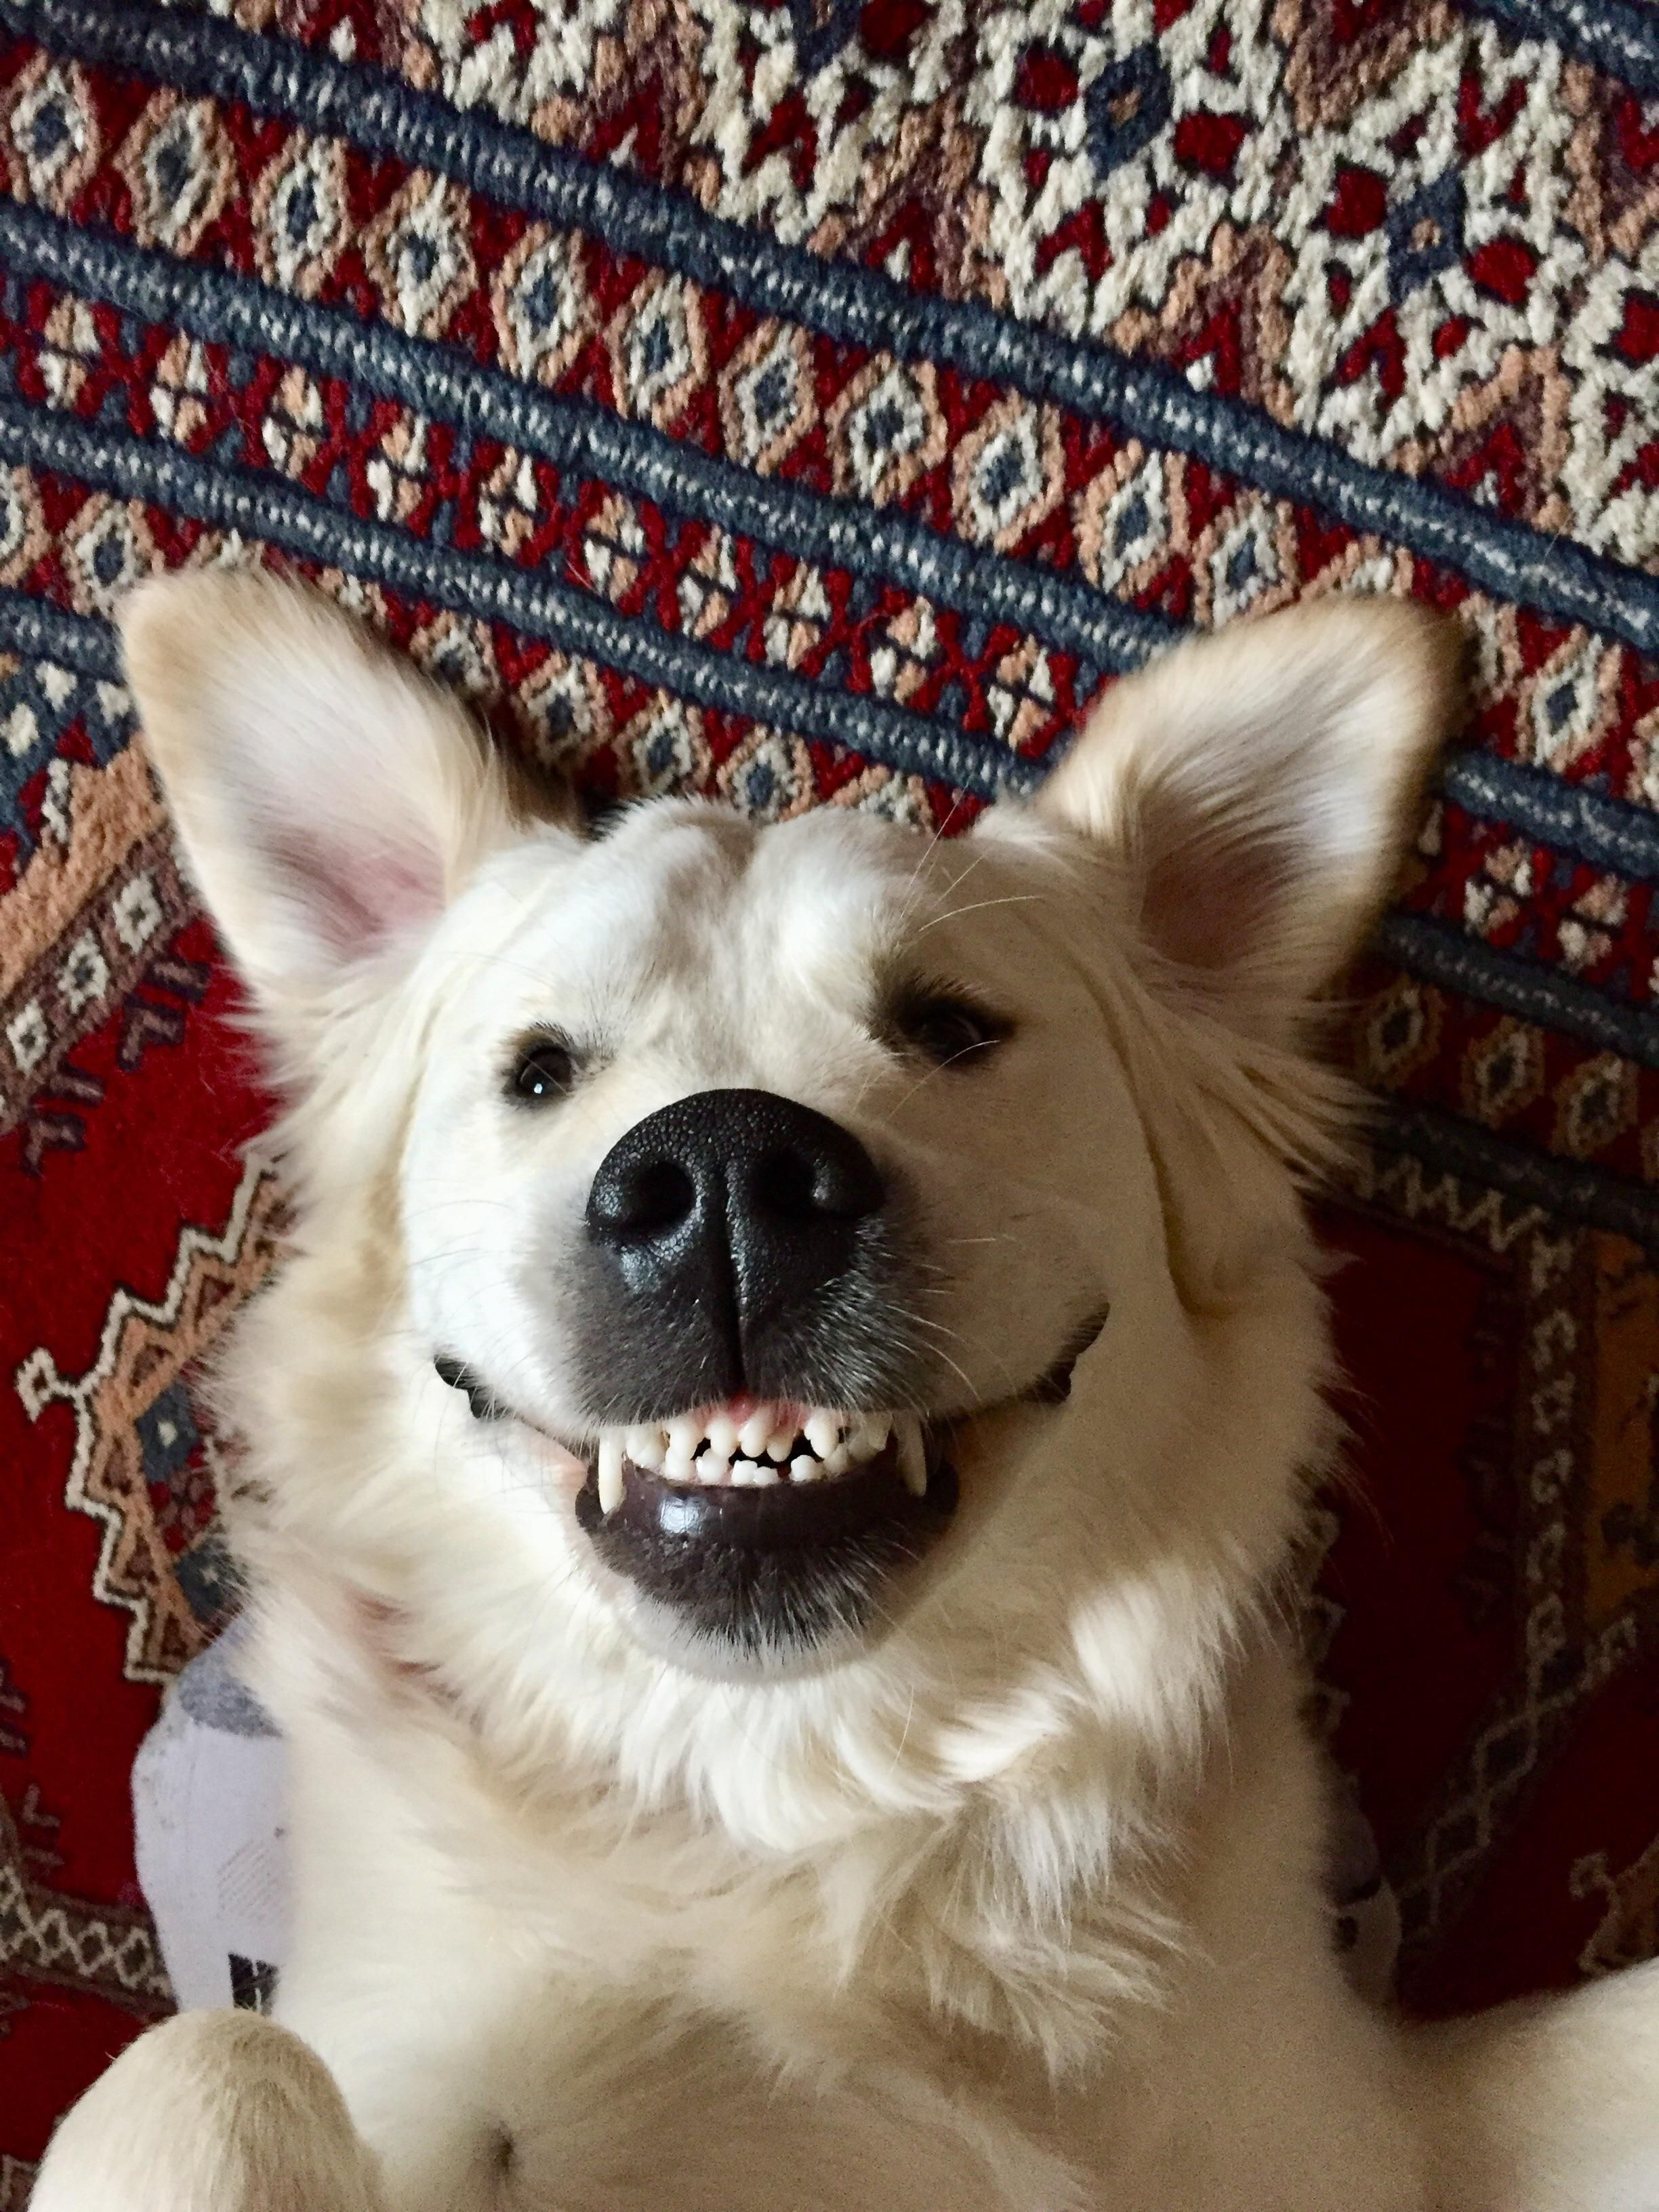 His crooked teeth give him a pretty derpy smile... https